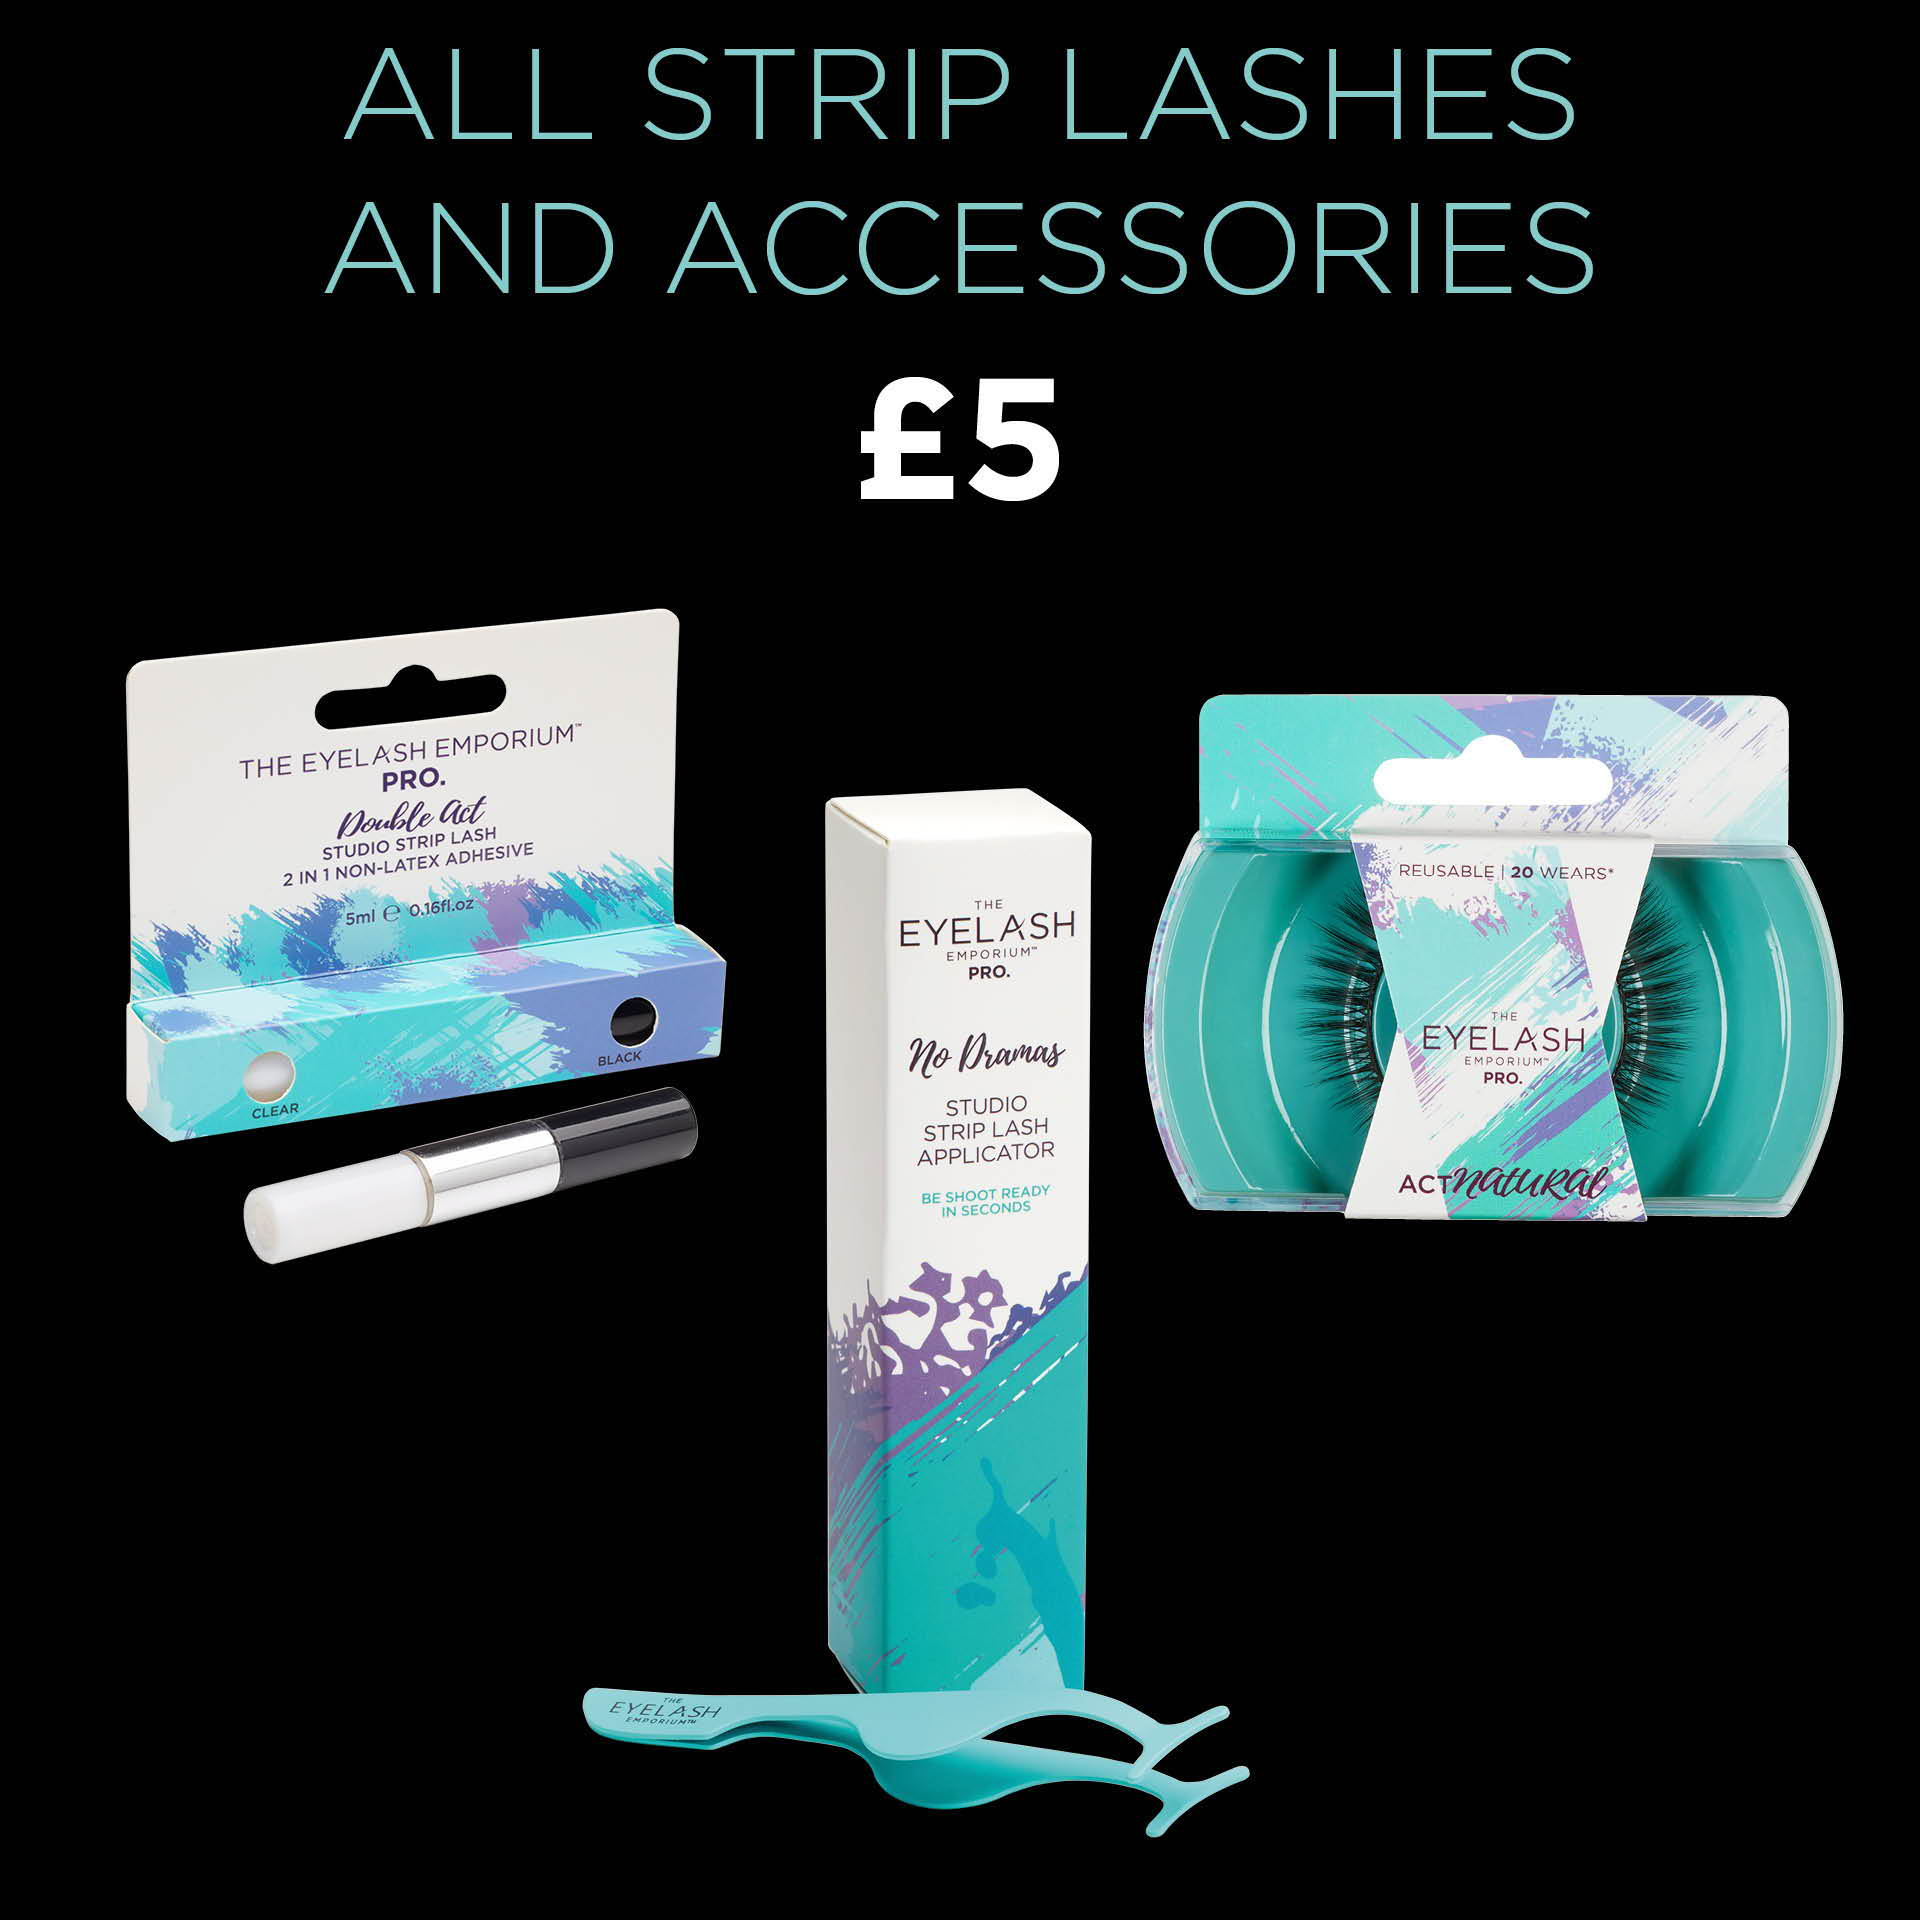 All strip lashes and accessories now £5